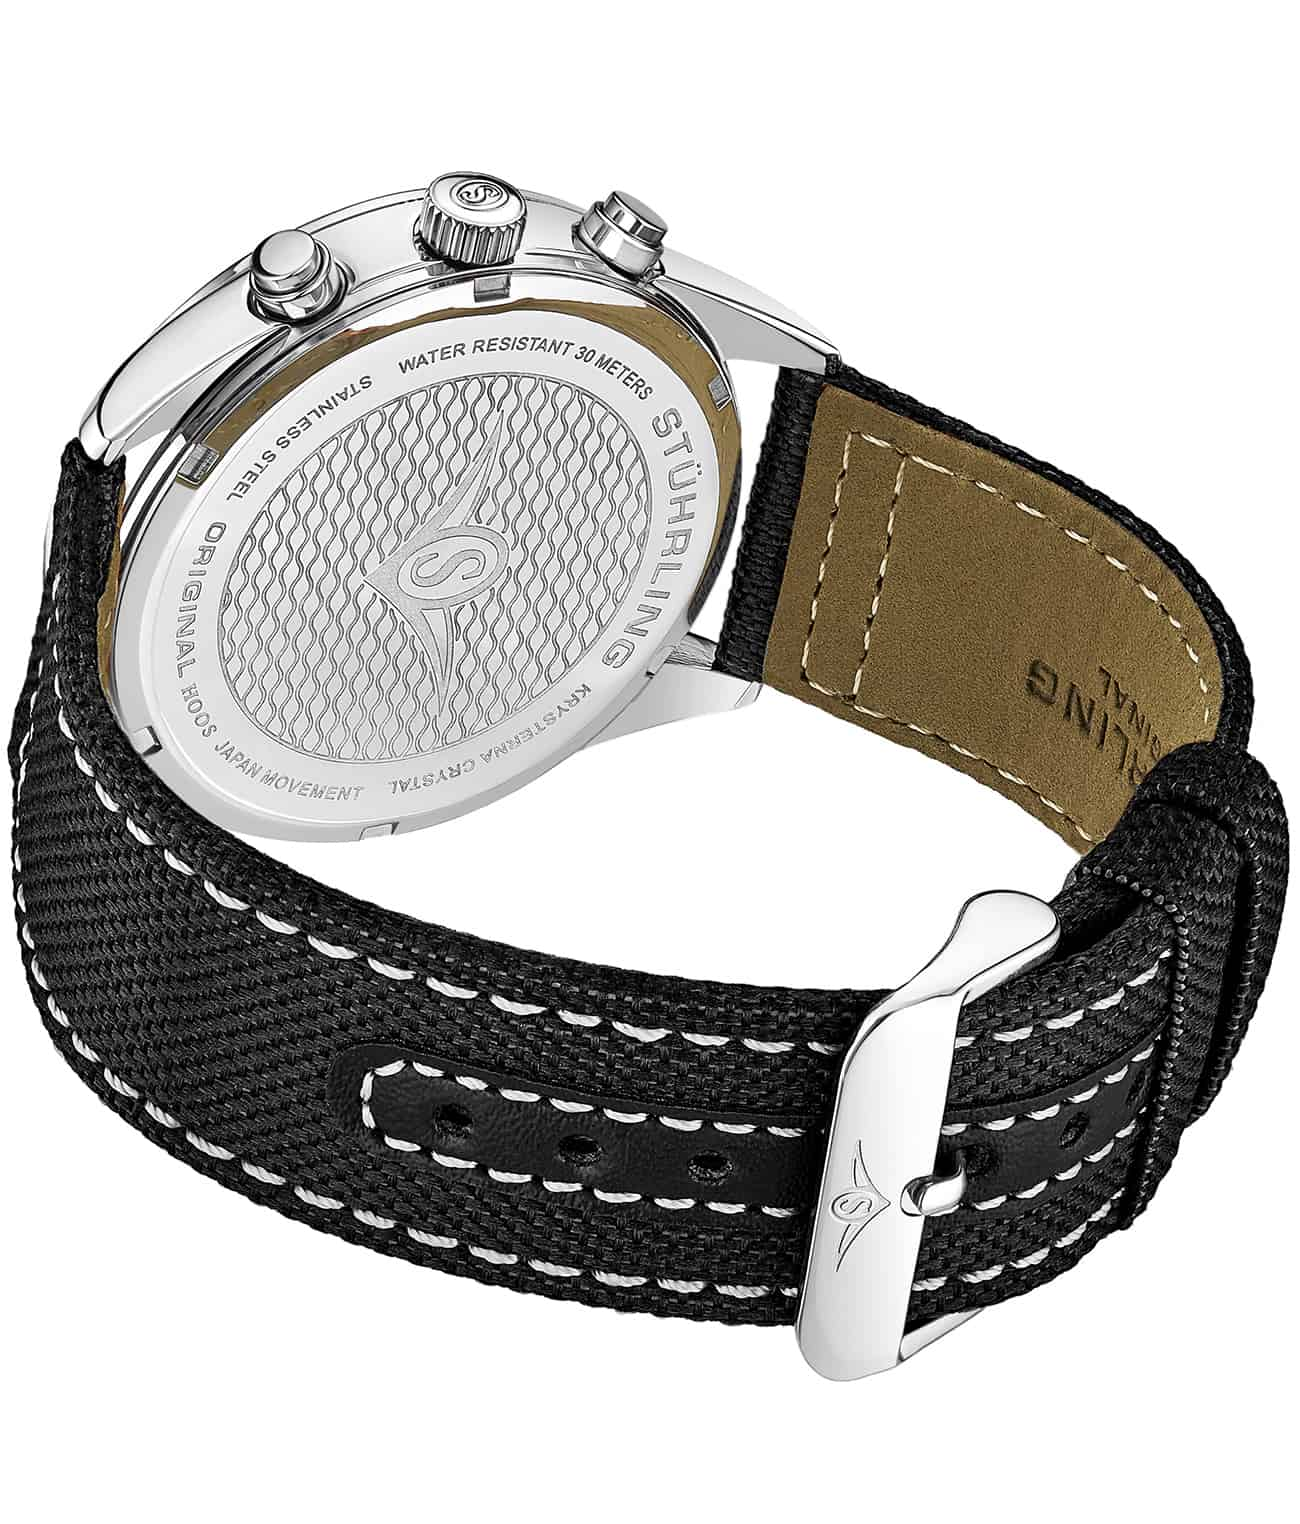 Silver Dial / Silver Case / Black Band